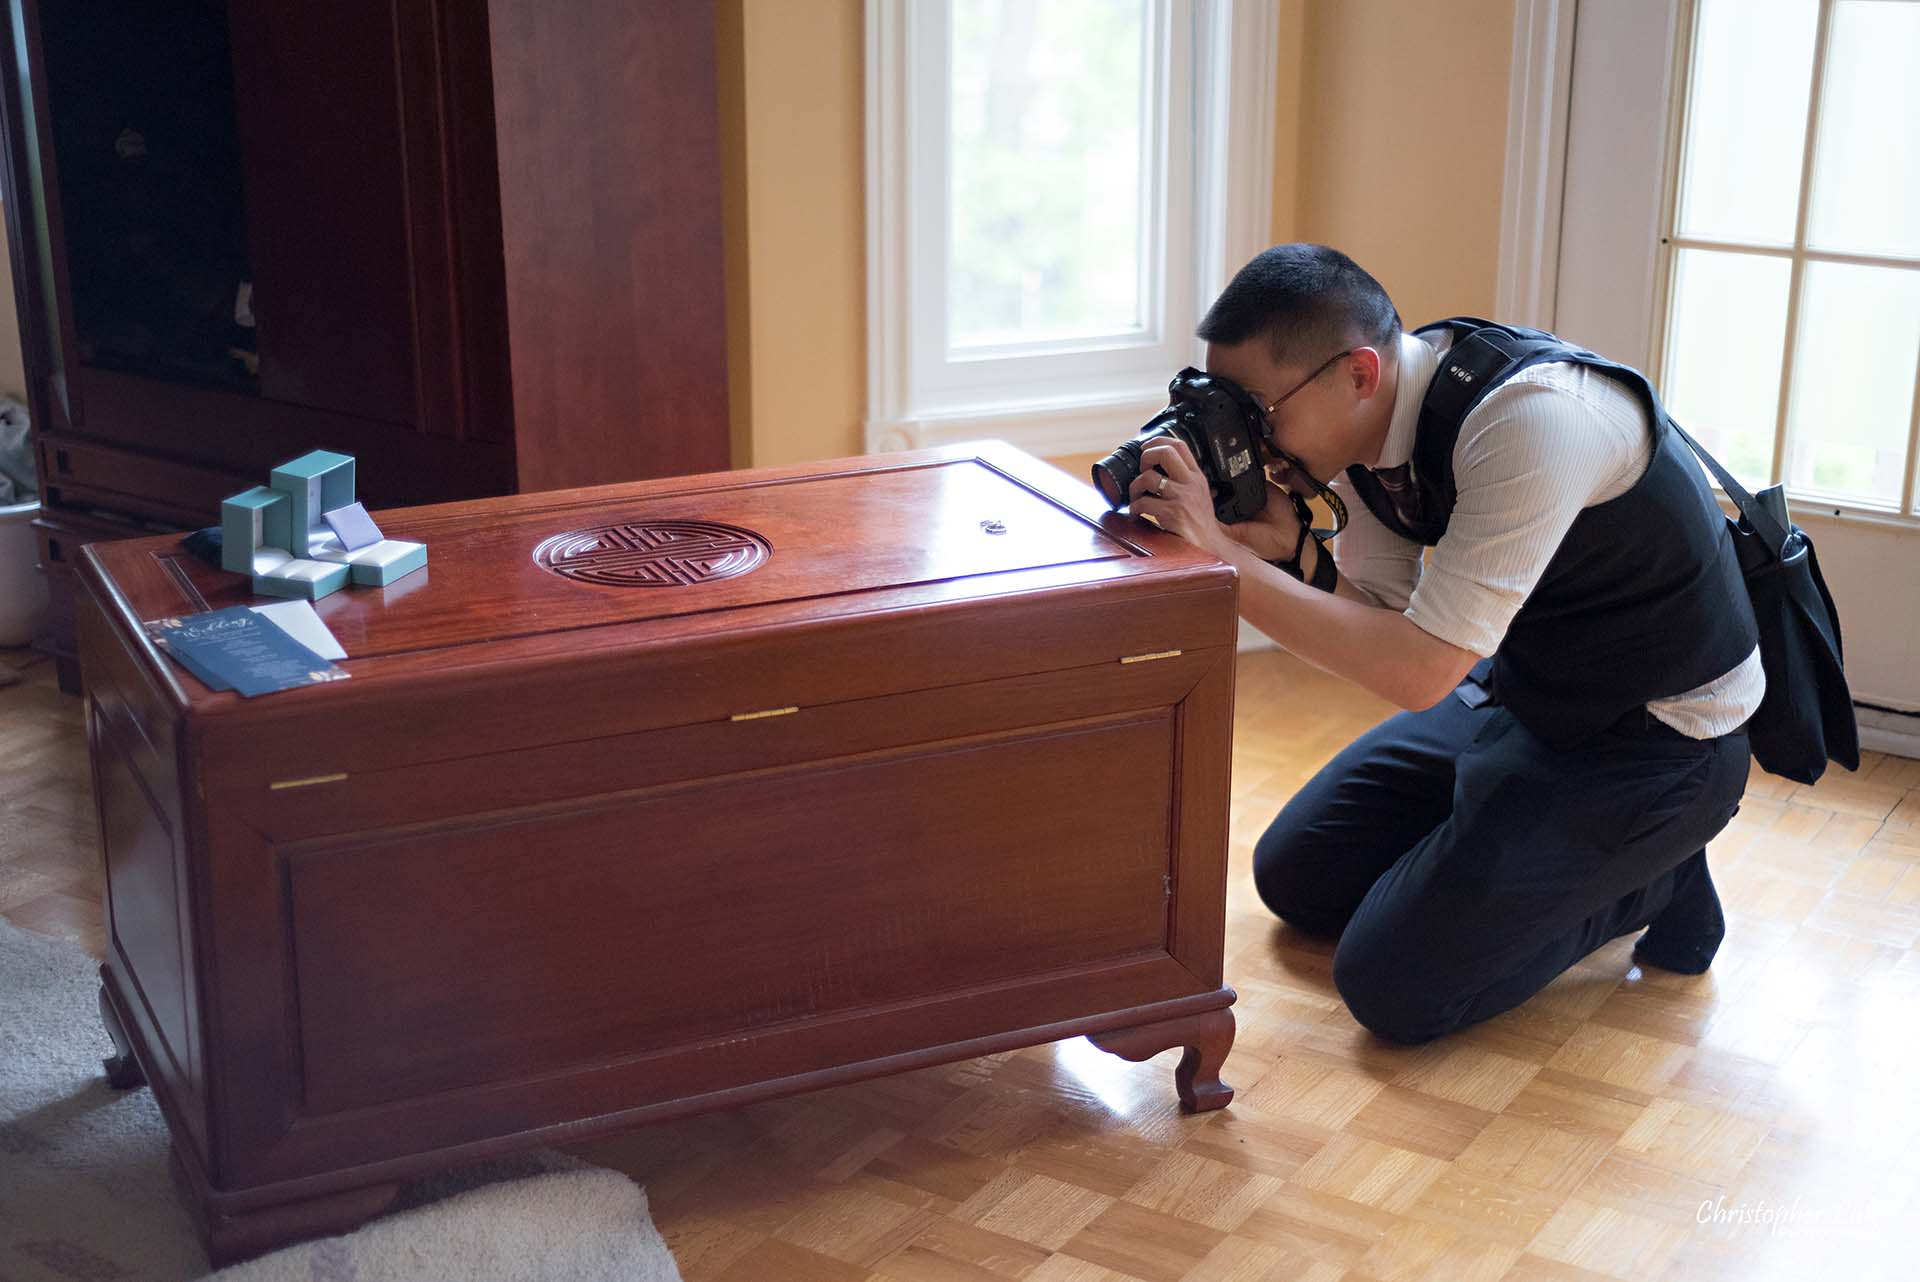 Christopher Luk Toronto Wedding Photographer Behind the Scenes Bride Getting Ready Home Wooden Chest Rings Bands Macro Lens Details